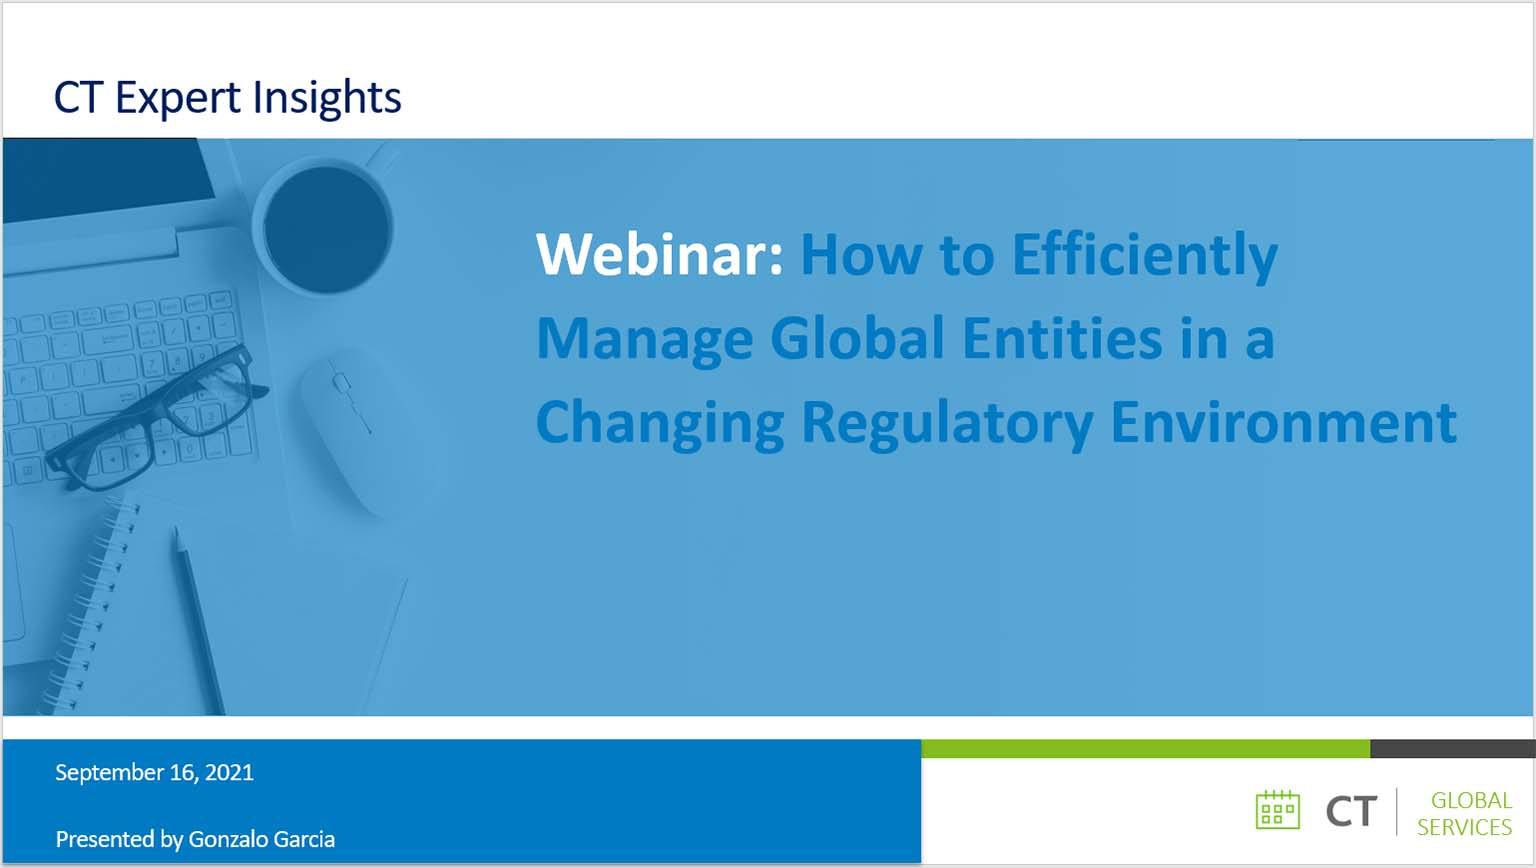 Webinar: How to Efficiently Manage Global Entities in a Changing Regulatory Environment